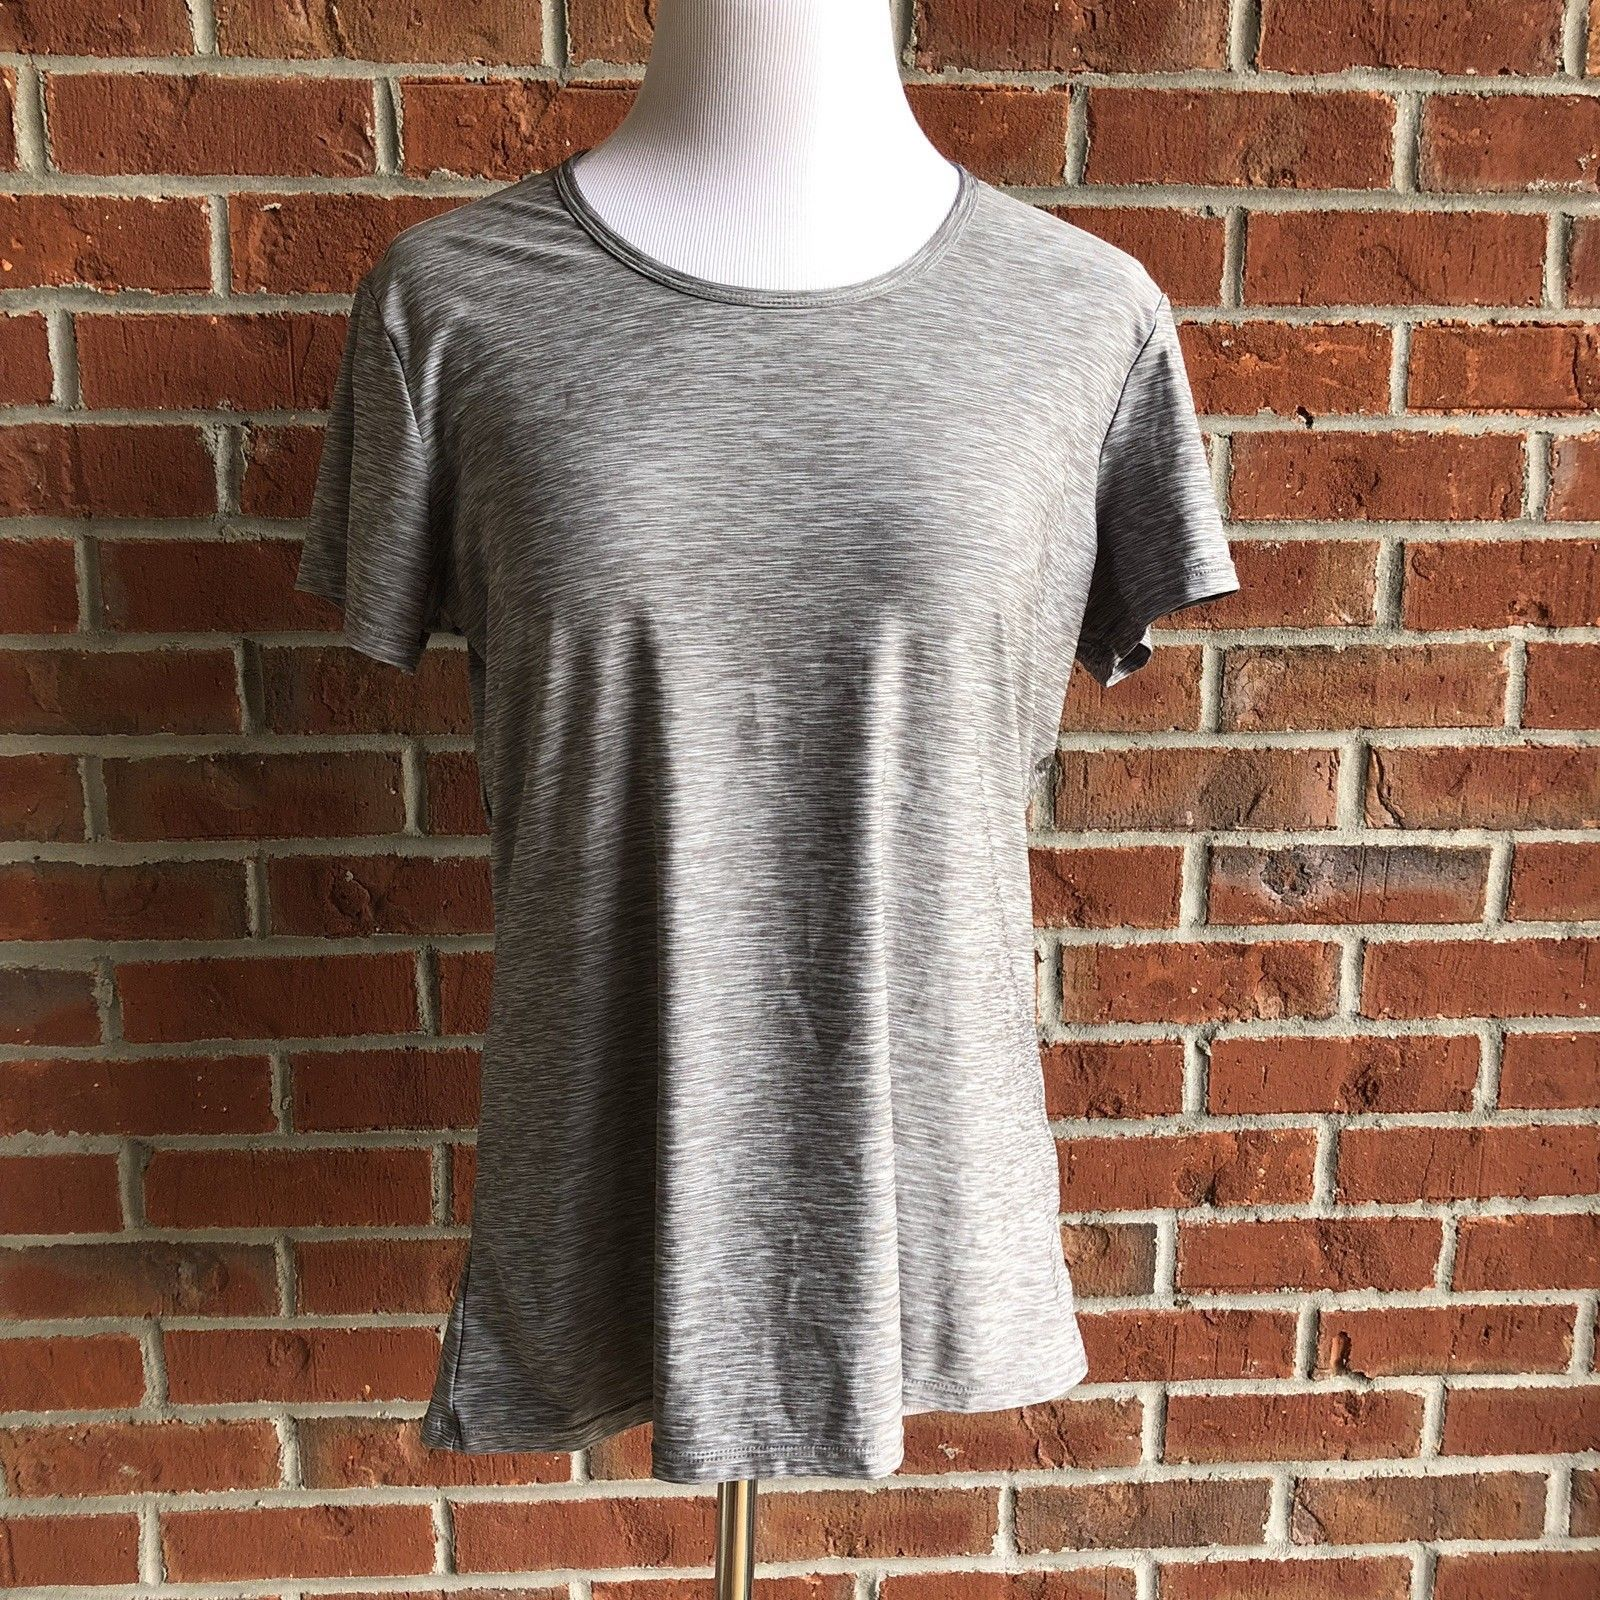 32 Degrees Cool Short Sleeve Top - Size XL